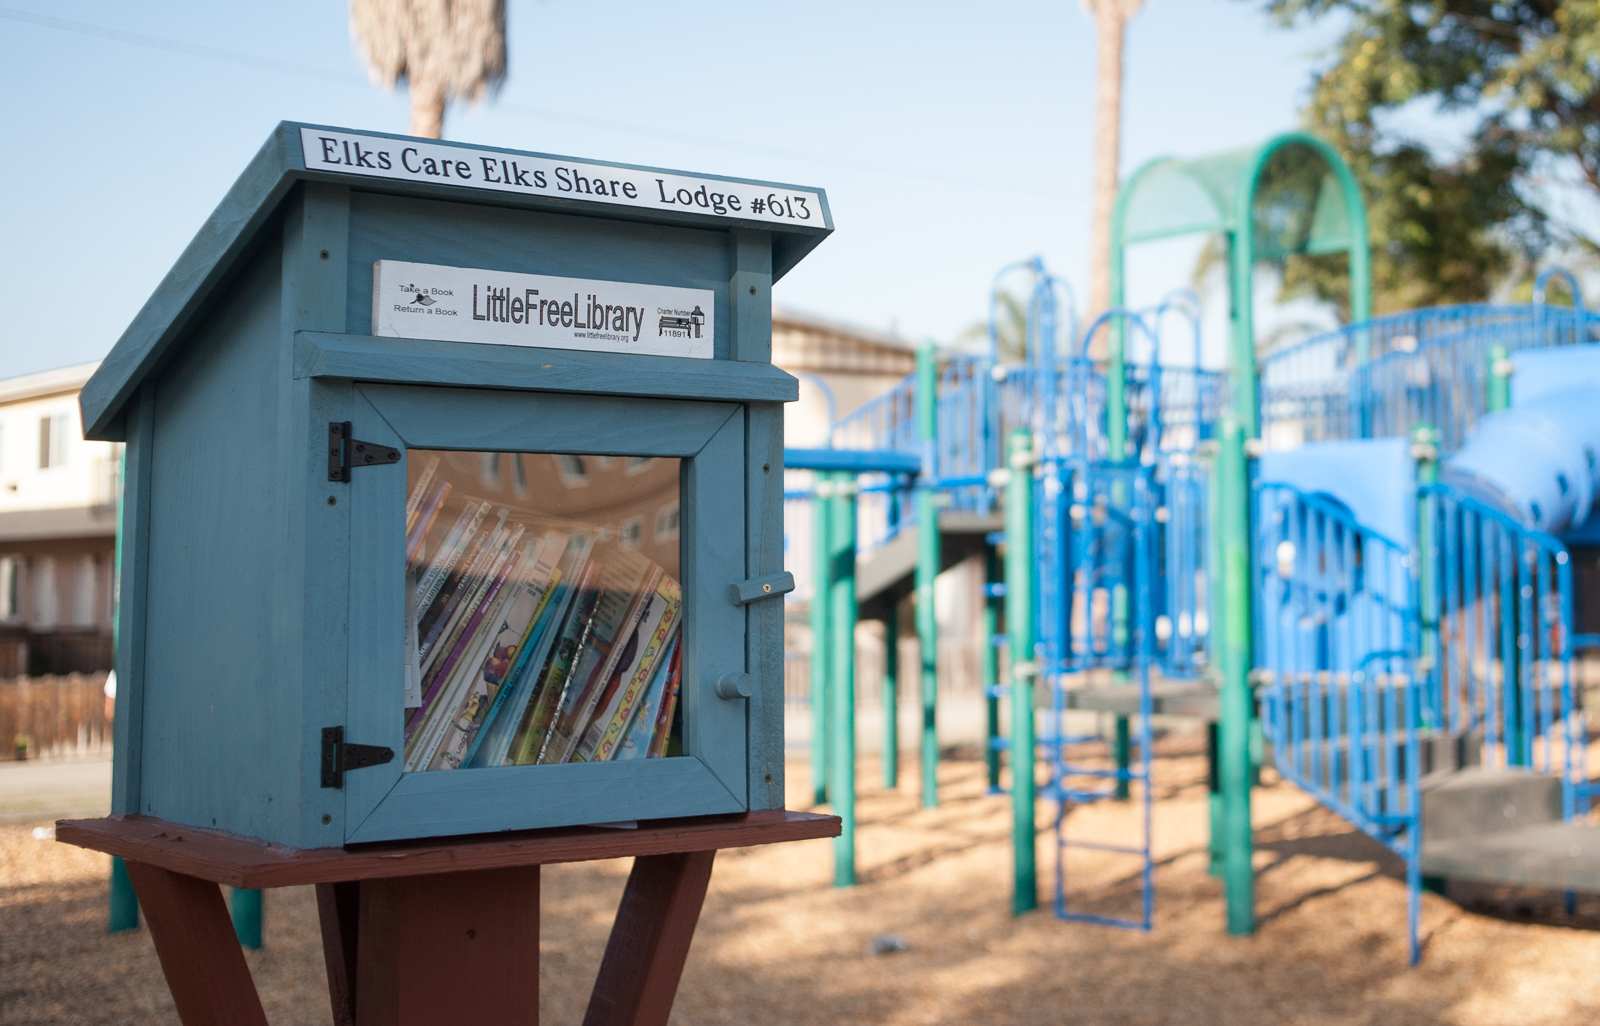 This Free Little Library recently opened in Isla Vista. Peter Mounteer/Daily Nexus